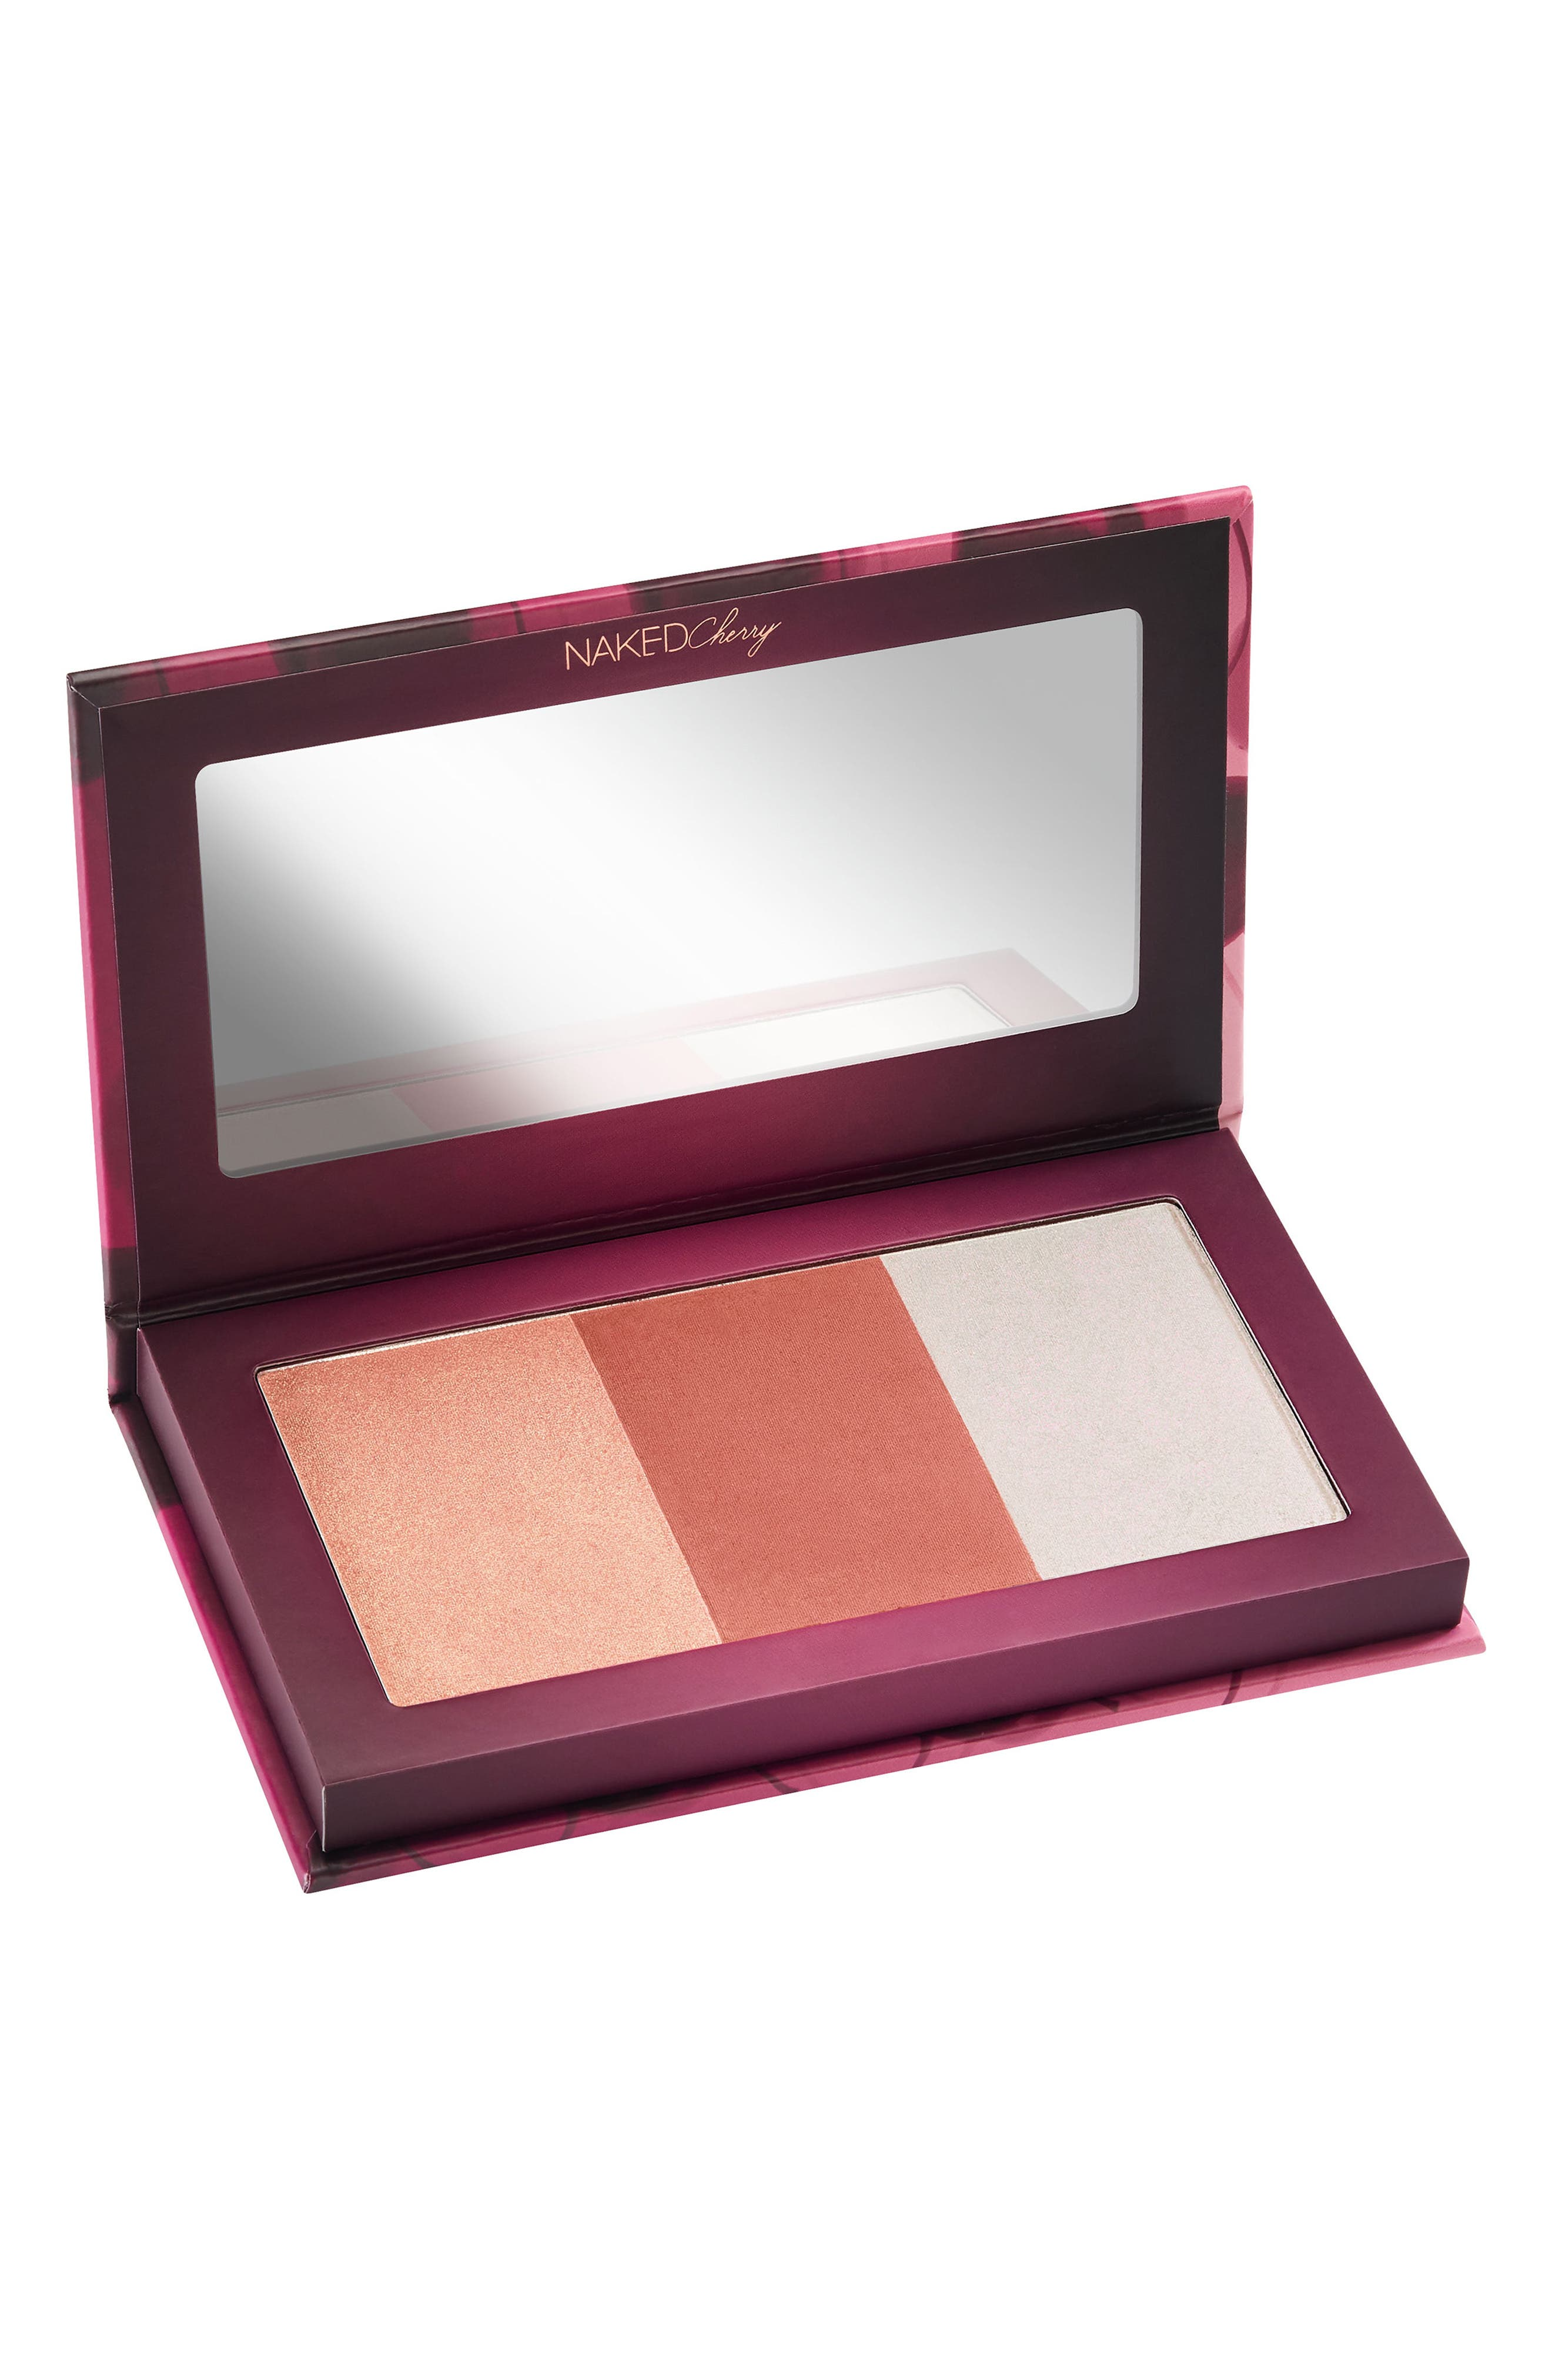 Naked Cherry Highlight and Blush Palette,                             Main thumbnail 1, color,                             NO COLOR